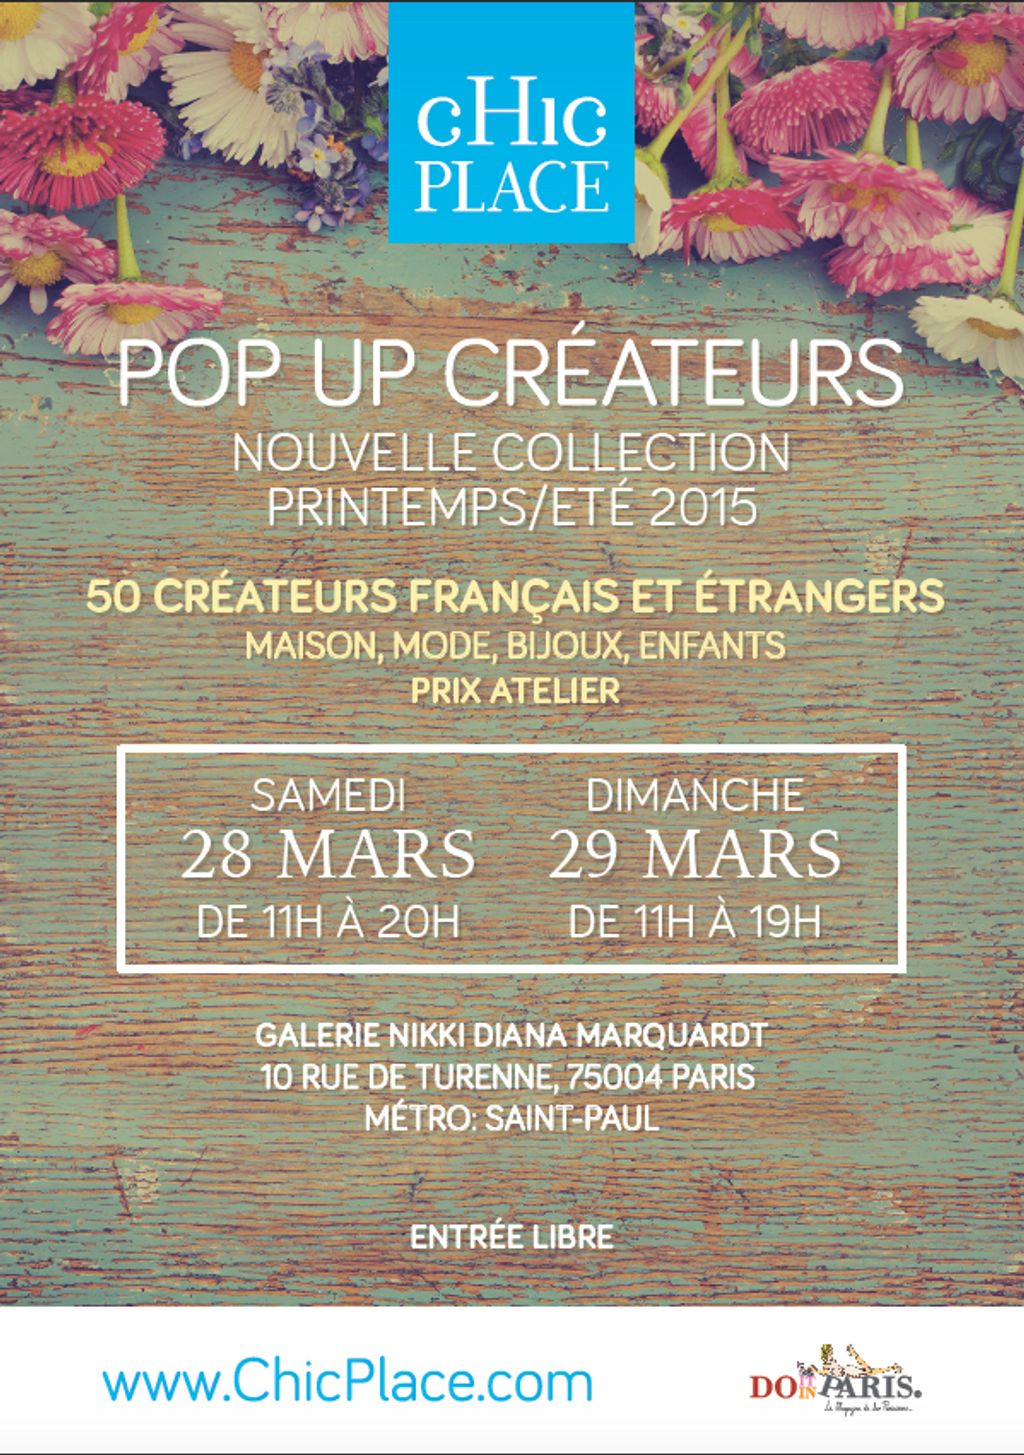 POP-UP STORE CHICLPLACE.COM LES 28 ET 29 MARS 2015